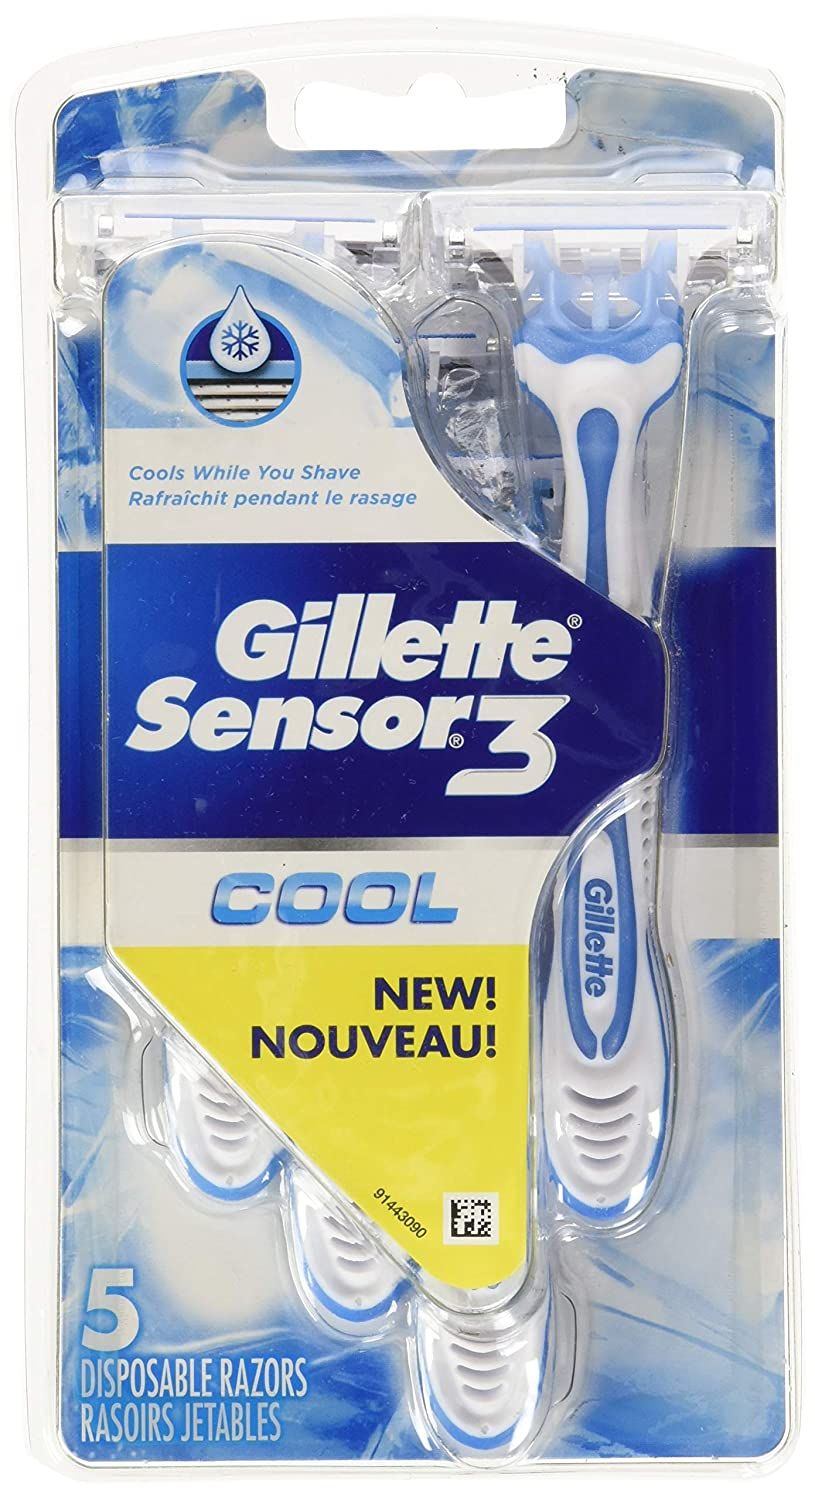 Gillette Sensor 3 Cool Men's 3-bladed Disposable Razor, 5 Count Procter and Gamble